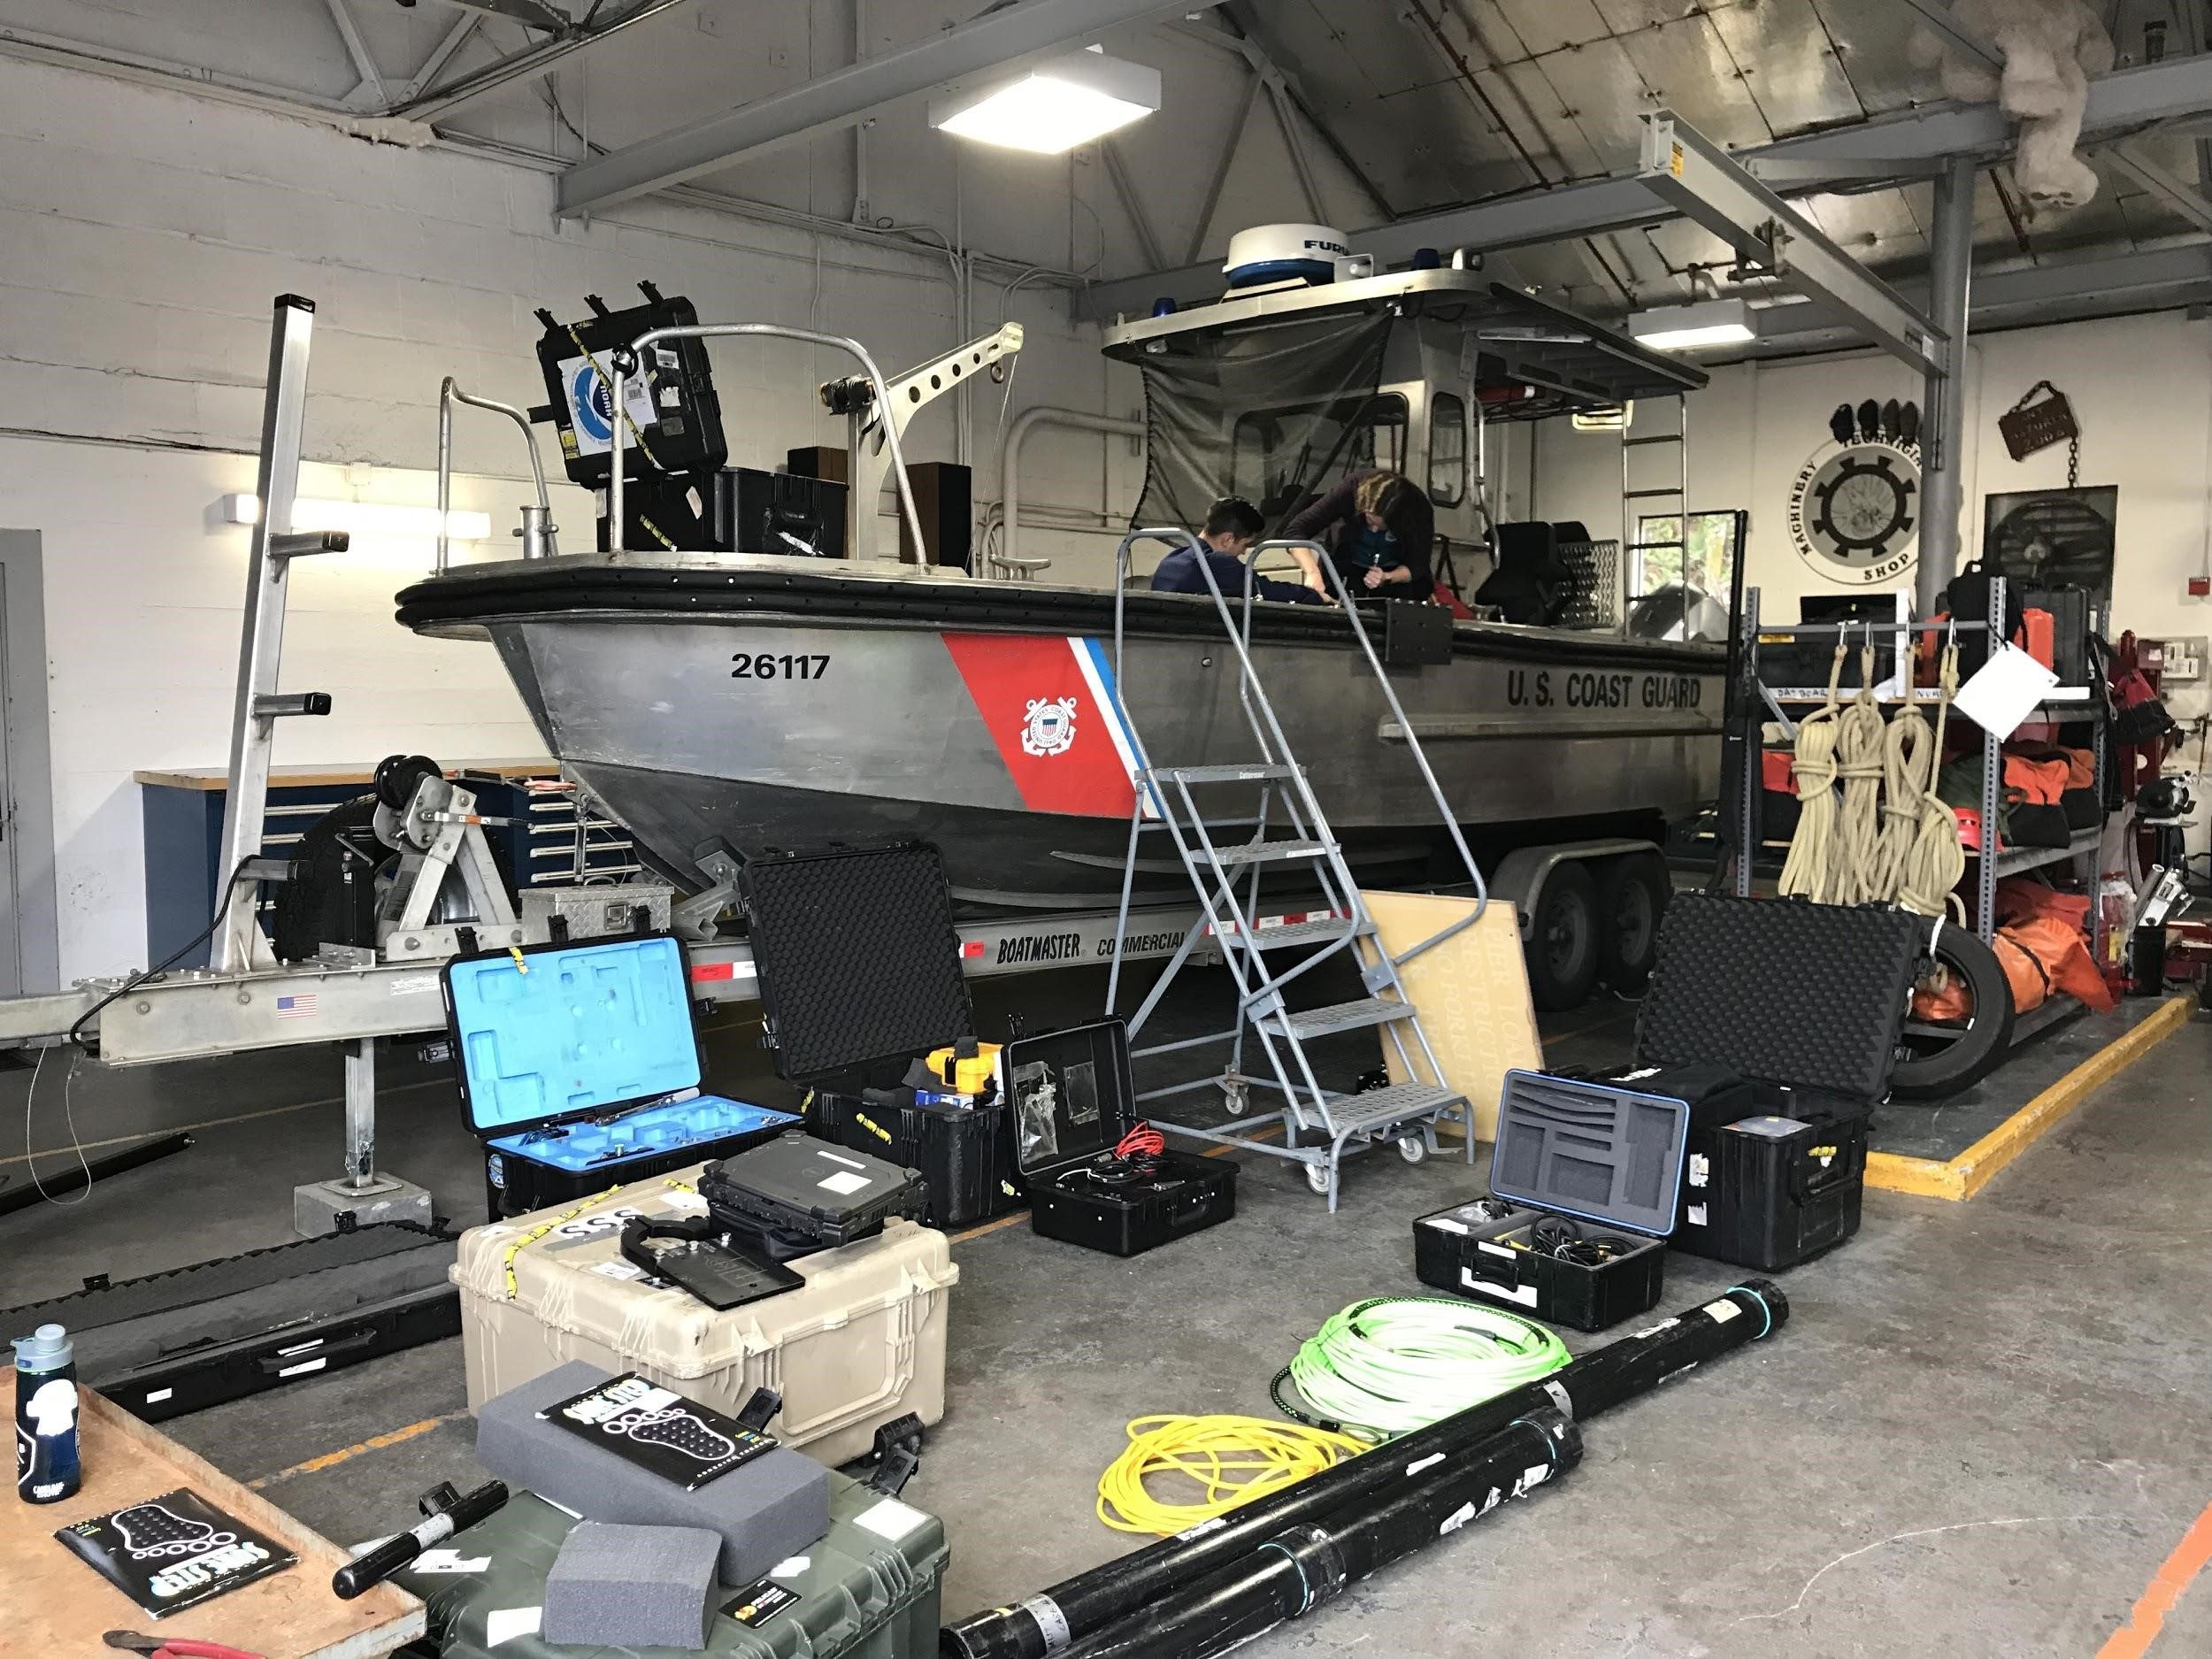 Setting up the MIST equipment on a USCG TANB vessel